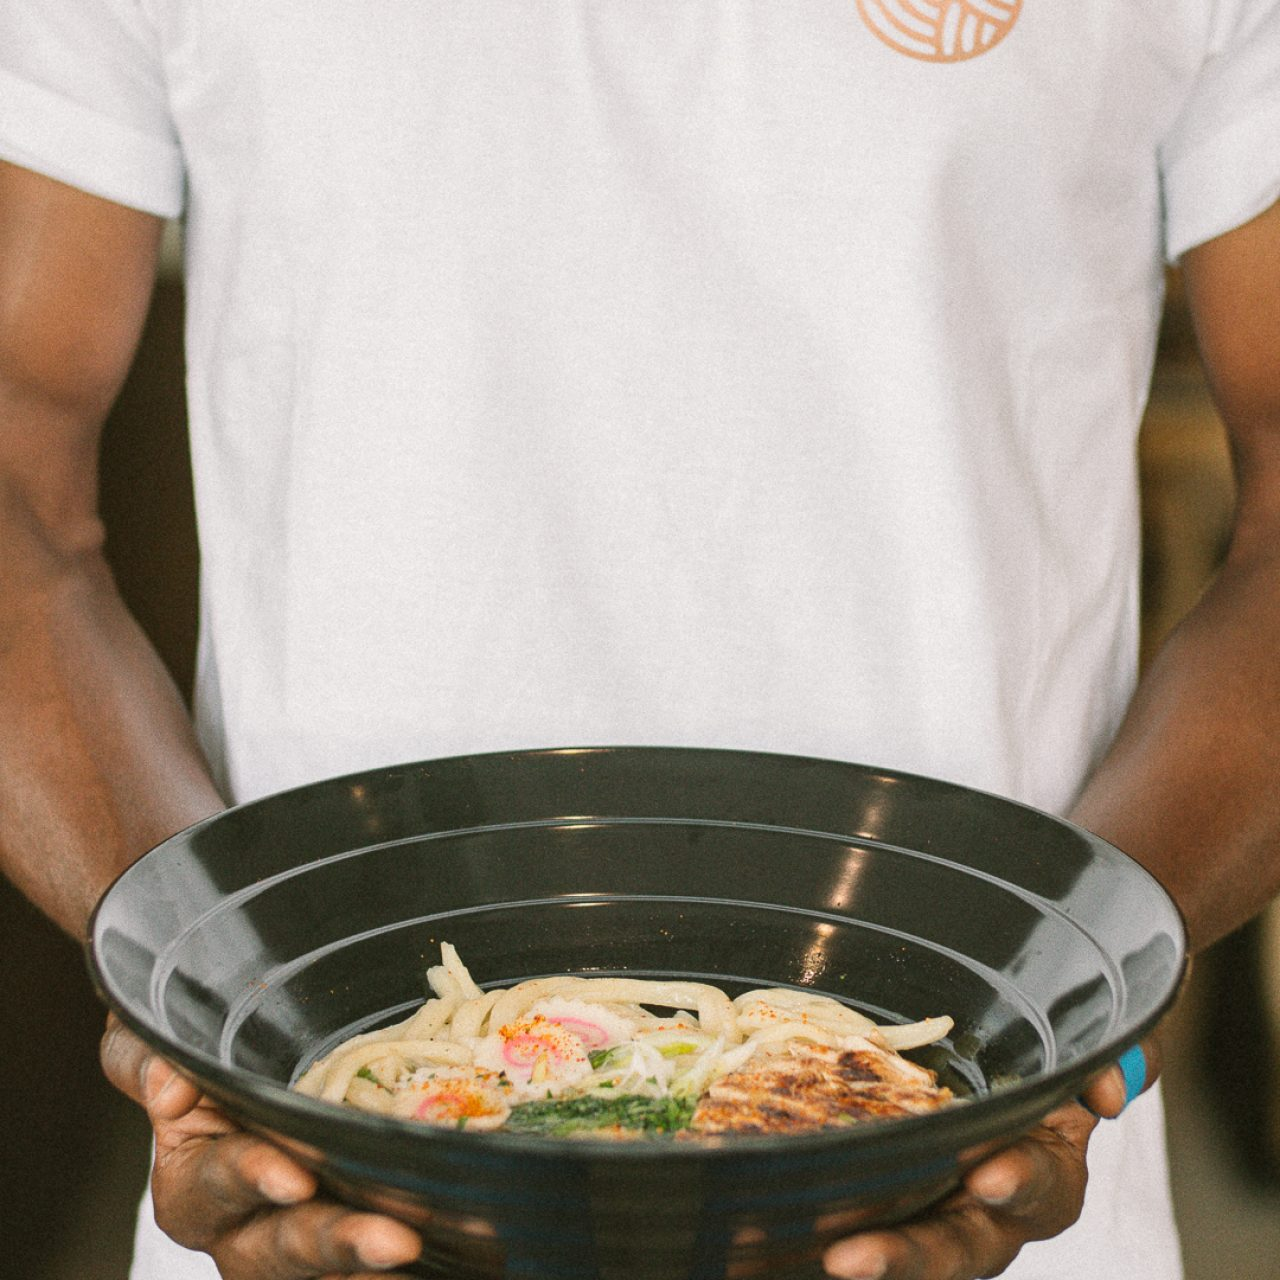 9 new ethical and healthy food options